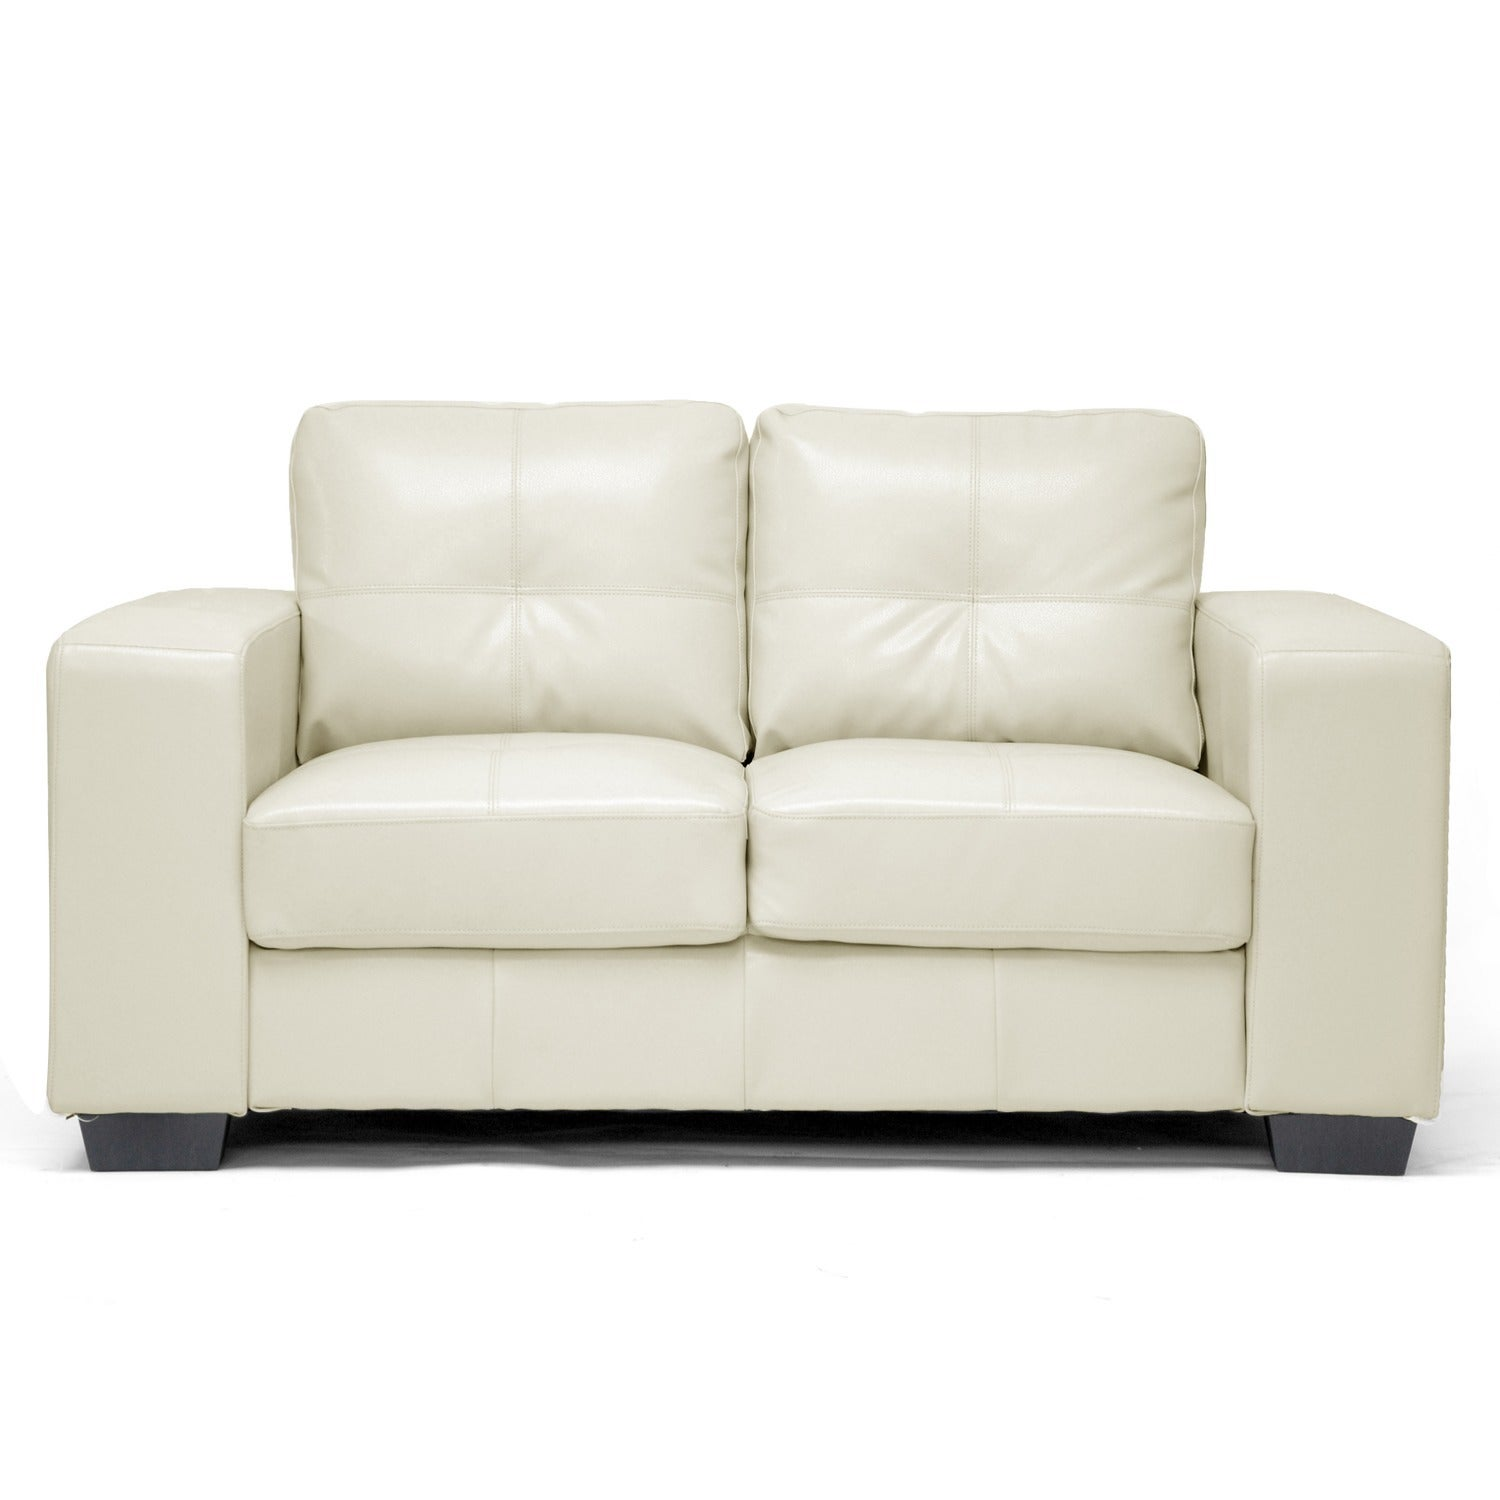 Whitney Modern Ivory Faux Leather Sofa And Loveseat Set Free